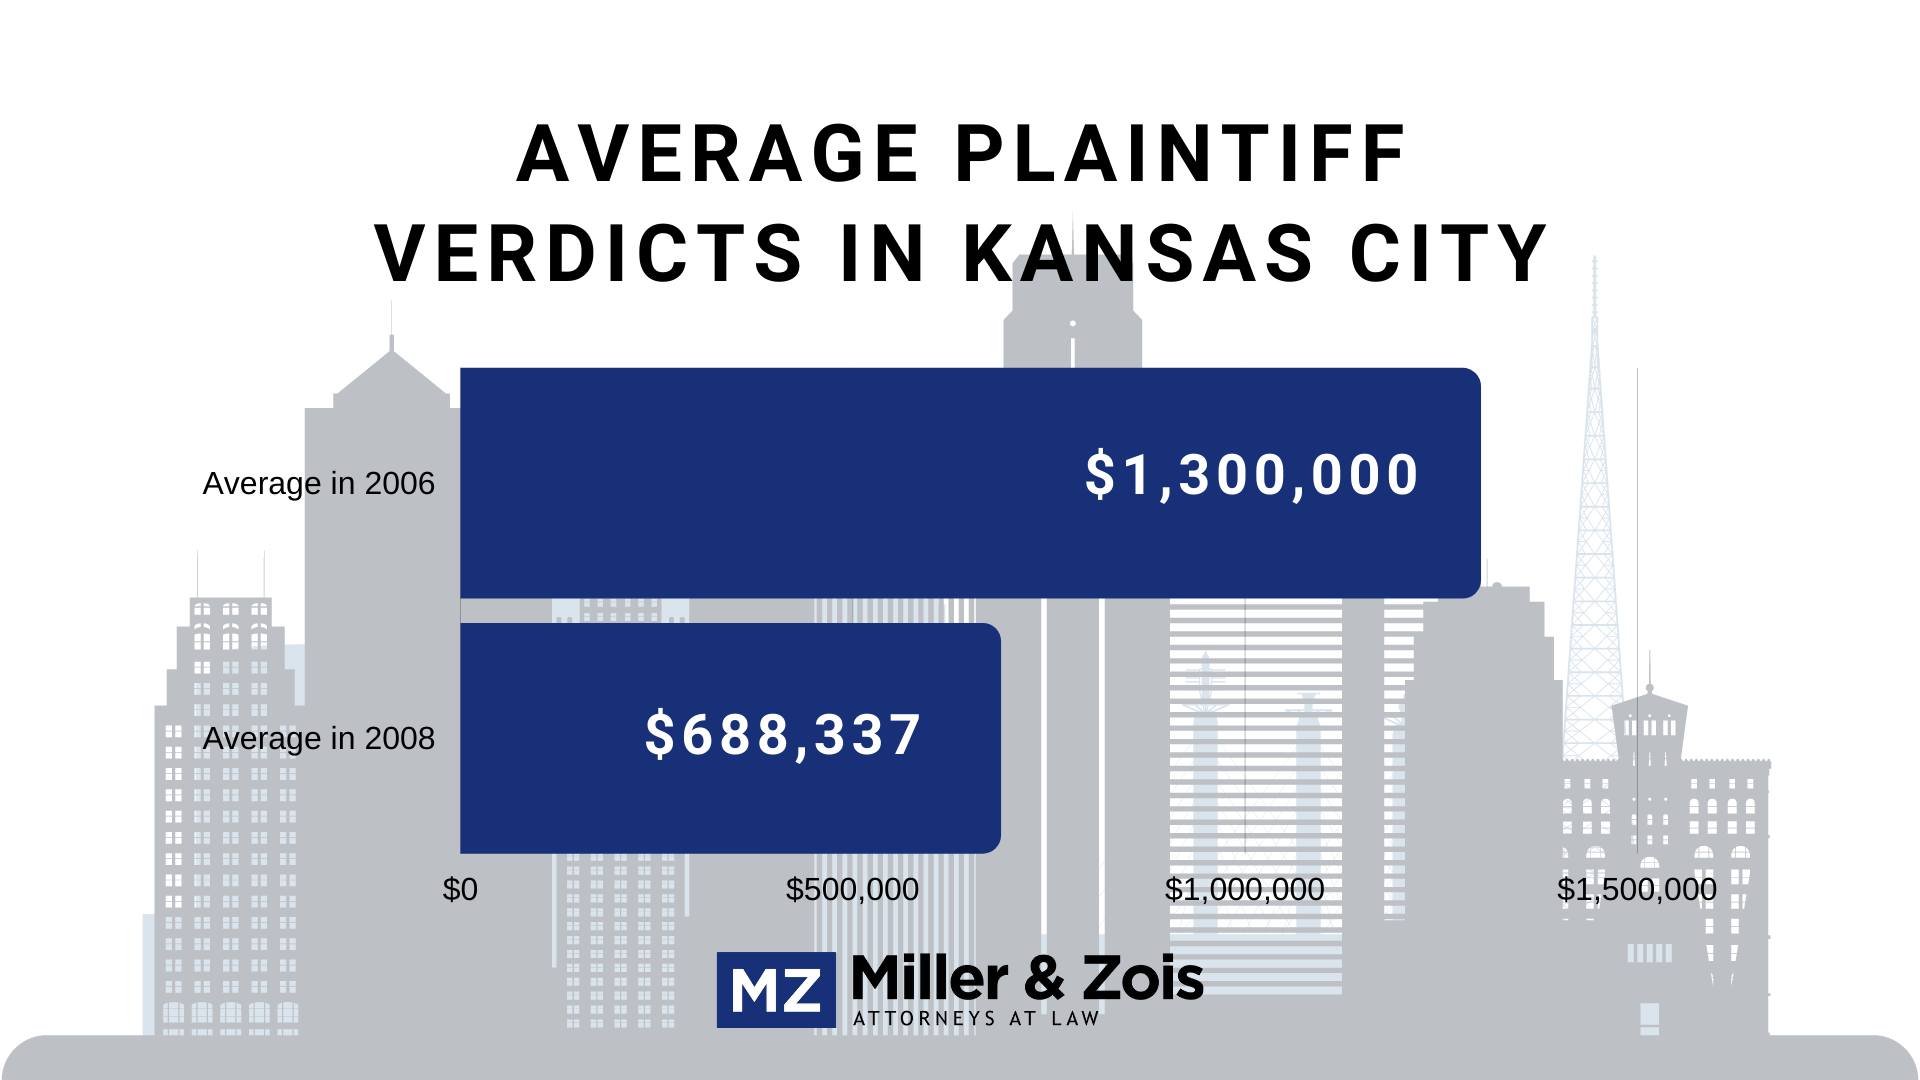 Kansas City verdicts